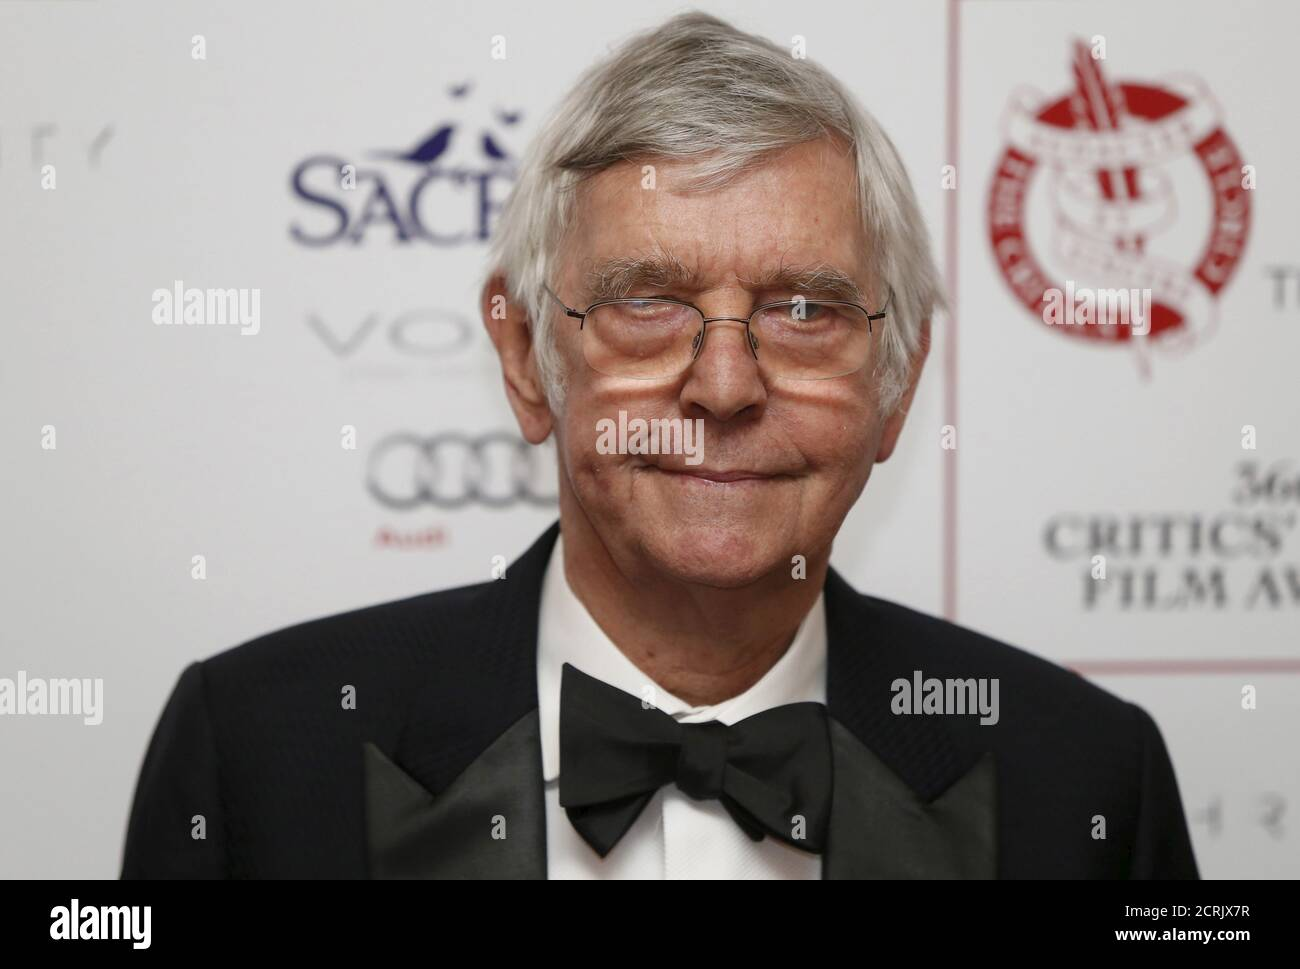 British actor Tom Courtenay poses for photographers at the 36th London Critics' Circle Film Awards in London, Britain January 17, 2016. REUTERS/Neil Hall Stock Photo